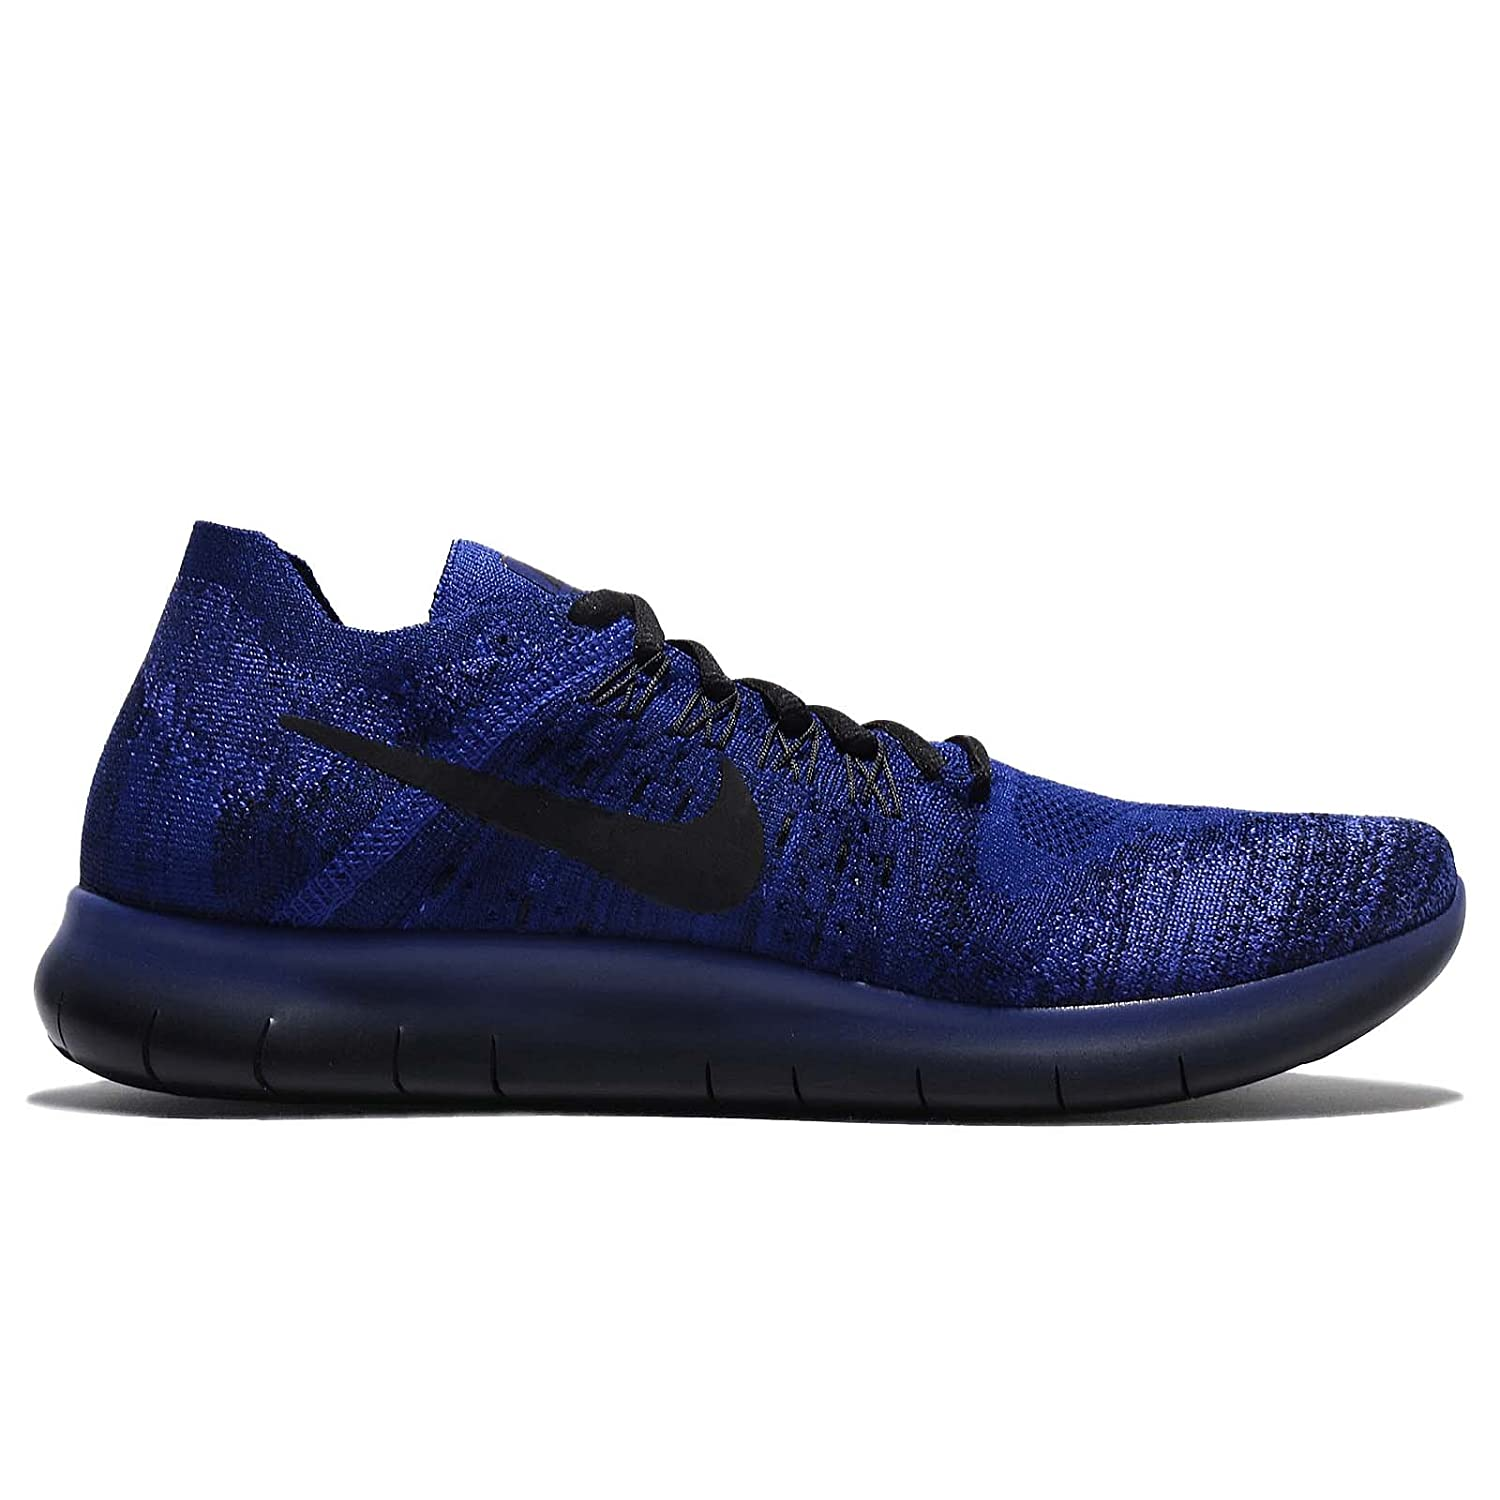 low priced 1623e e79bb ... italy amazon nike free rn flyknit 2017 880843 406 deep royal blue black  11 running e080e